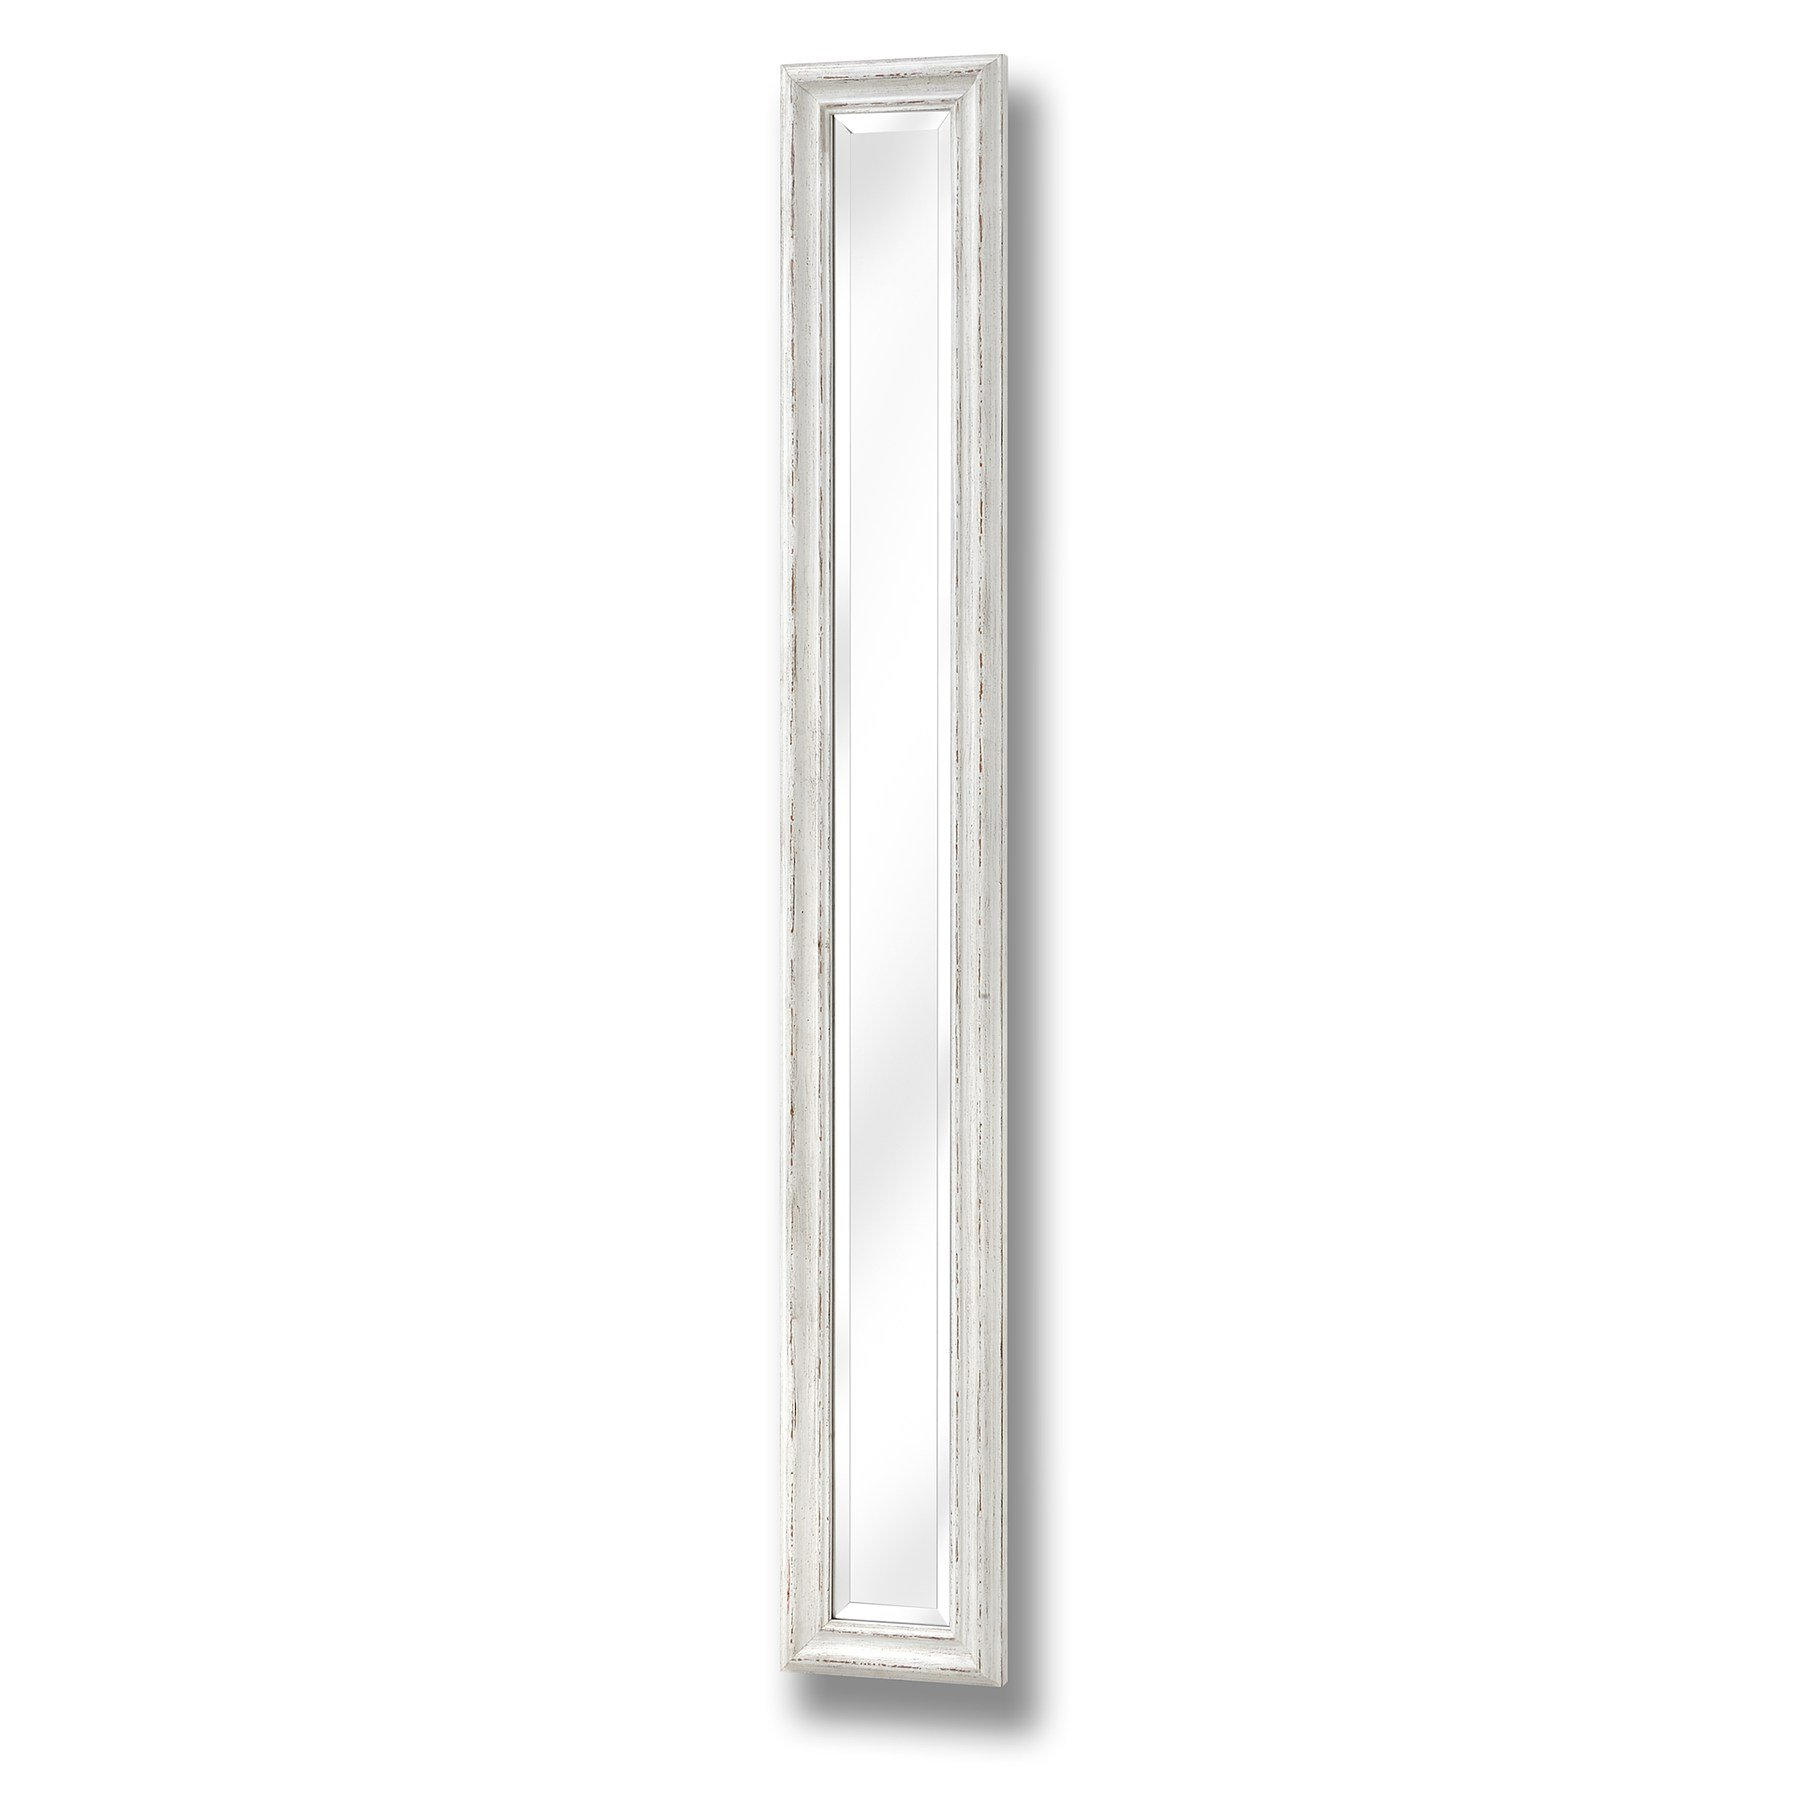 Antique white frame narrow wall mirror from hill interiors for Narrow wall mirror decorative